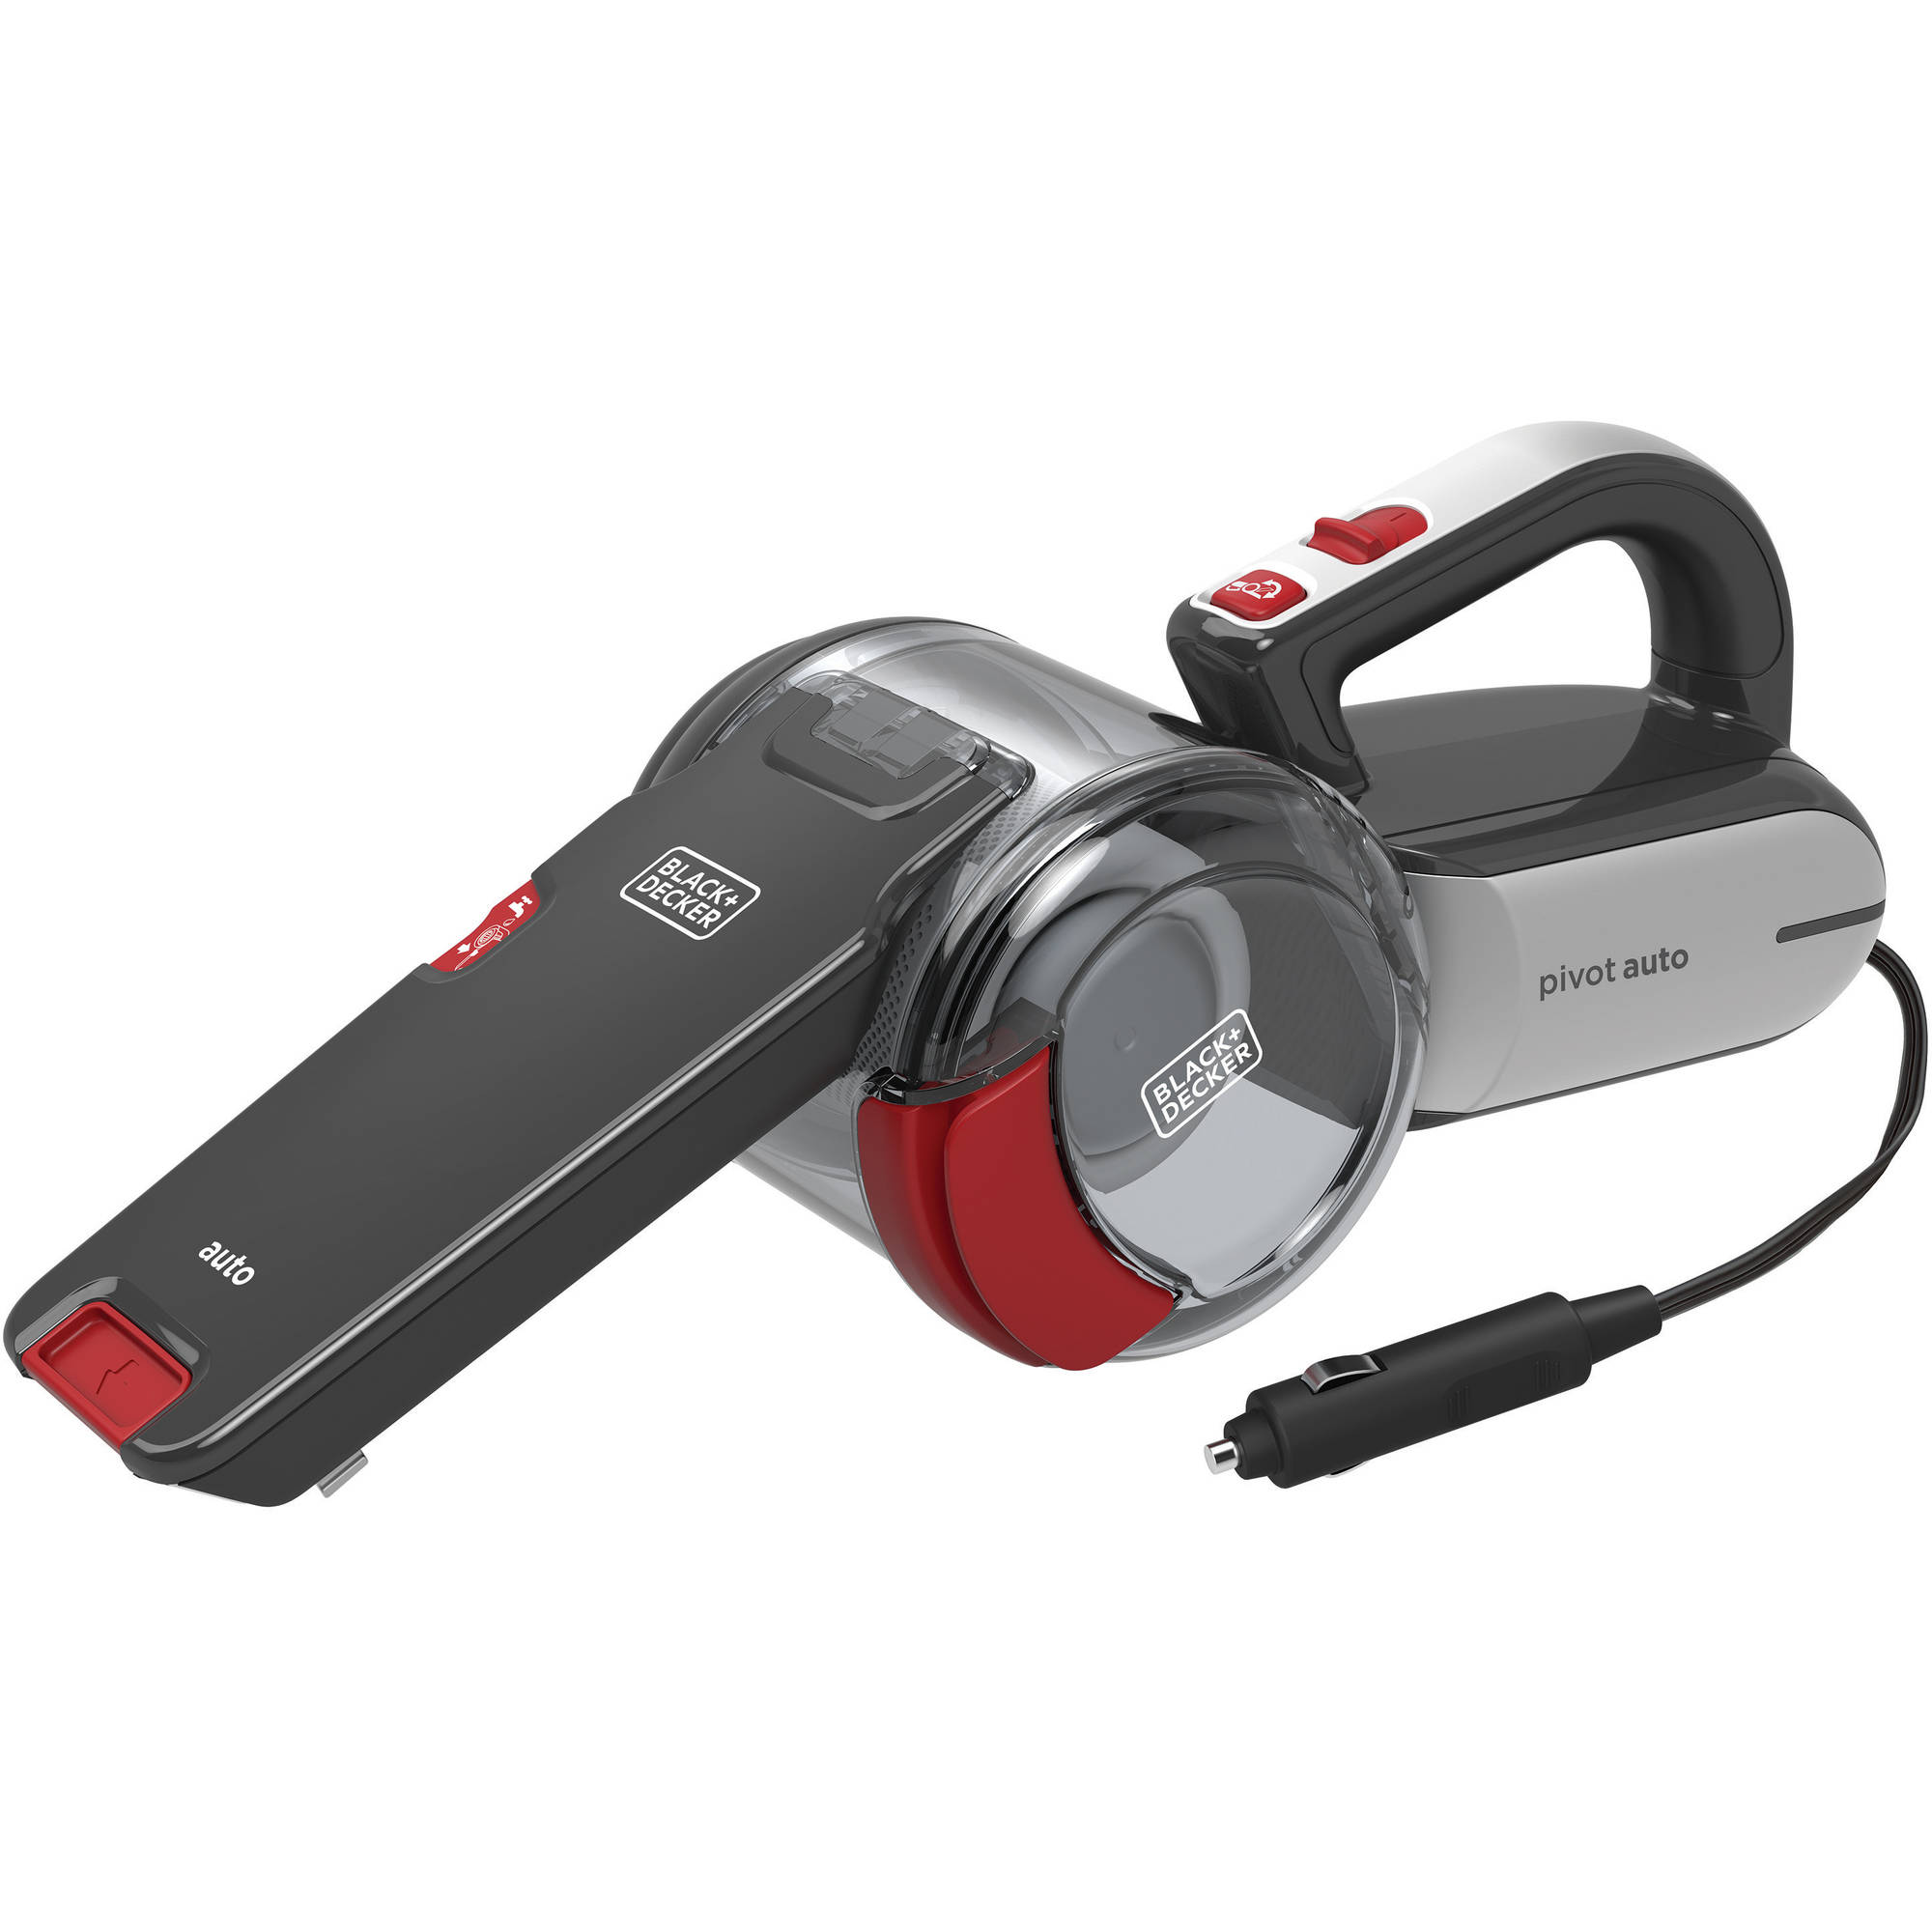 Black and Decker 12V Pivot Auto Vac, BDH1200PVAV